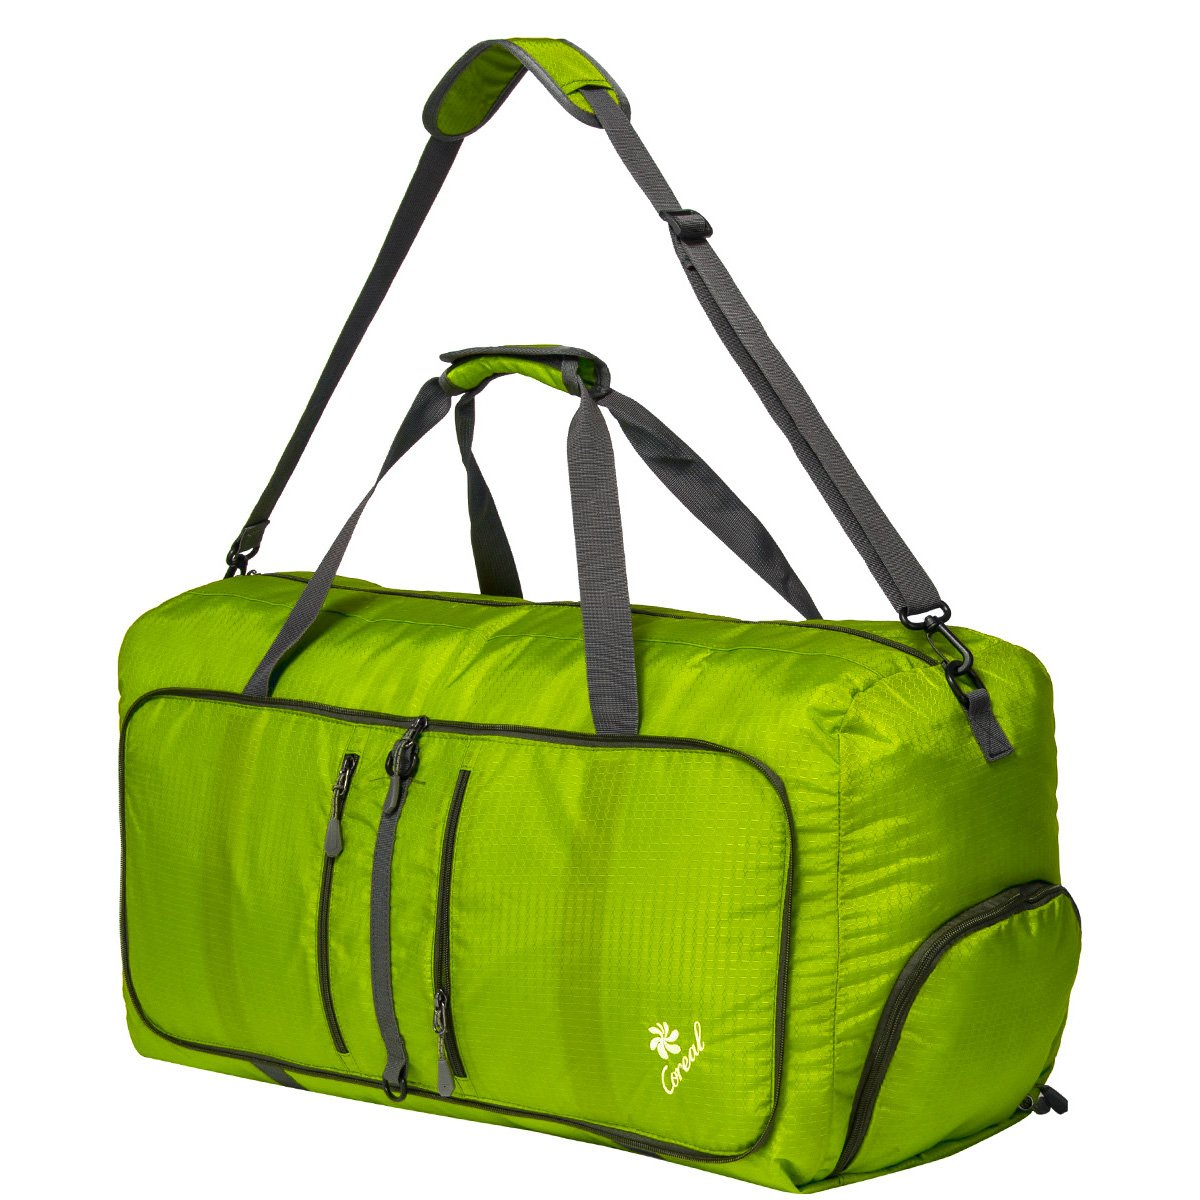 Coreal 80L Foldable Travel Camping Duffel Luggage Bag Shoe Compartment